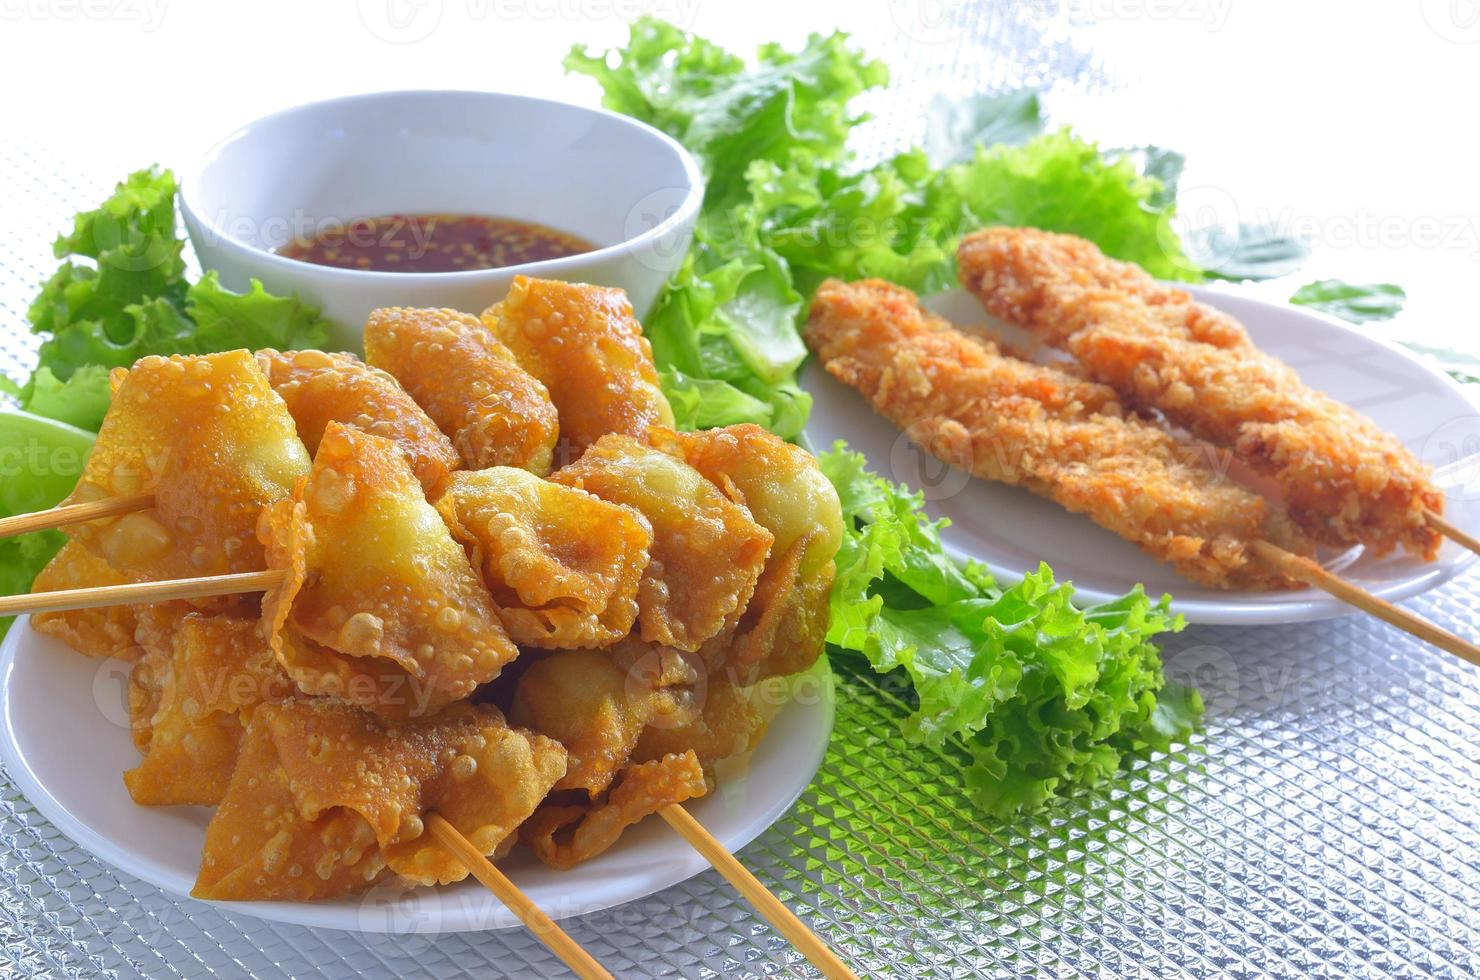 fried quail egg wrapped in wanton sheet and chicken photo